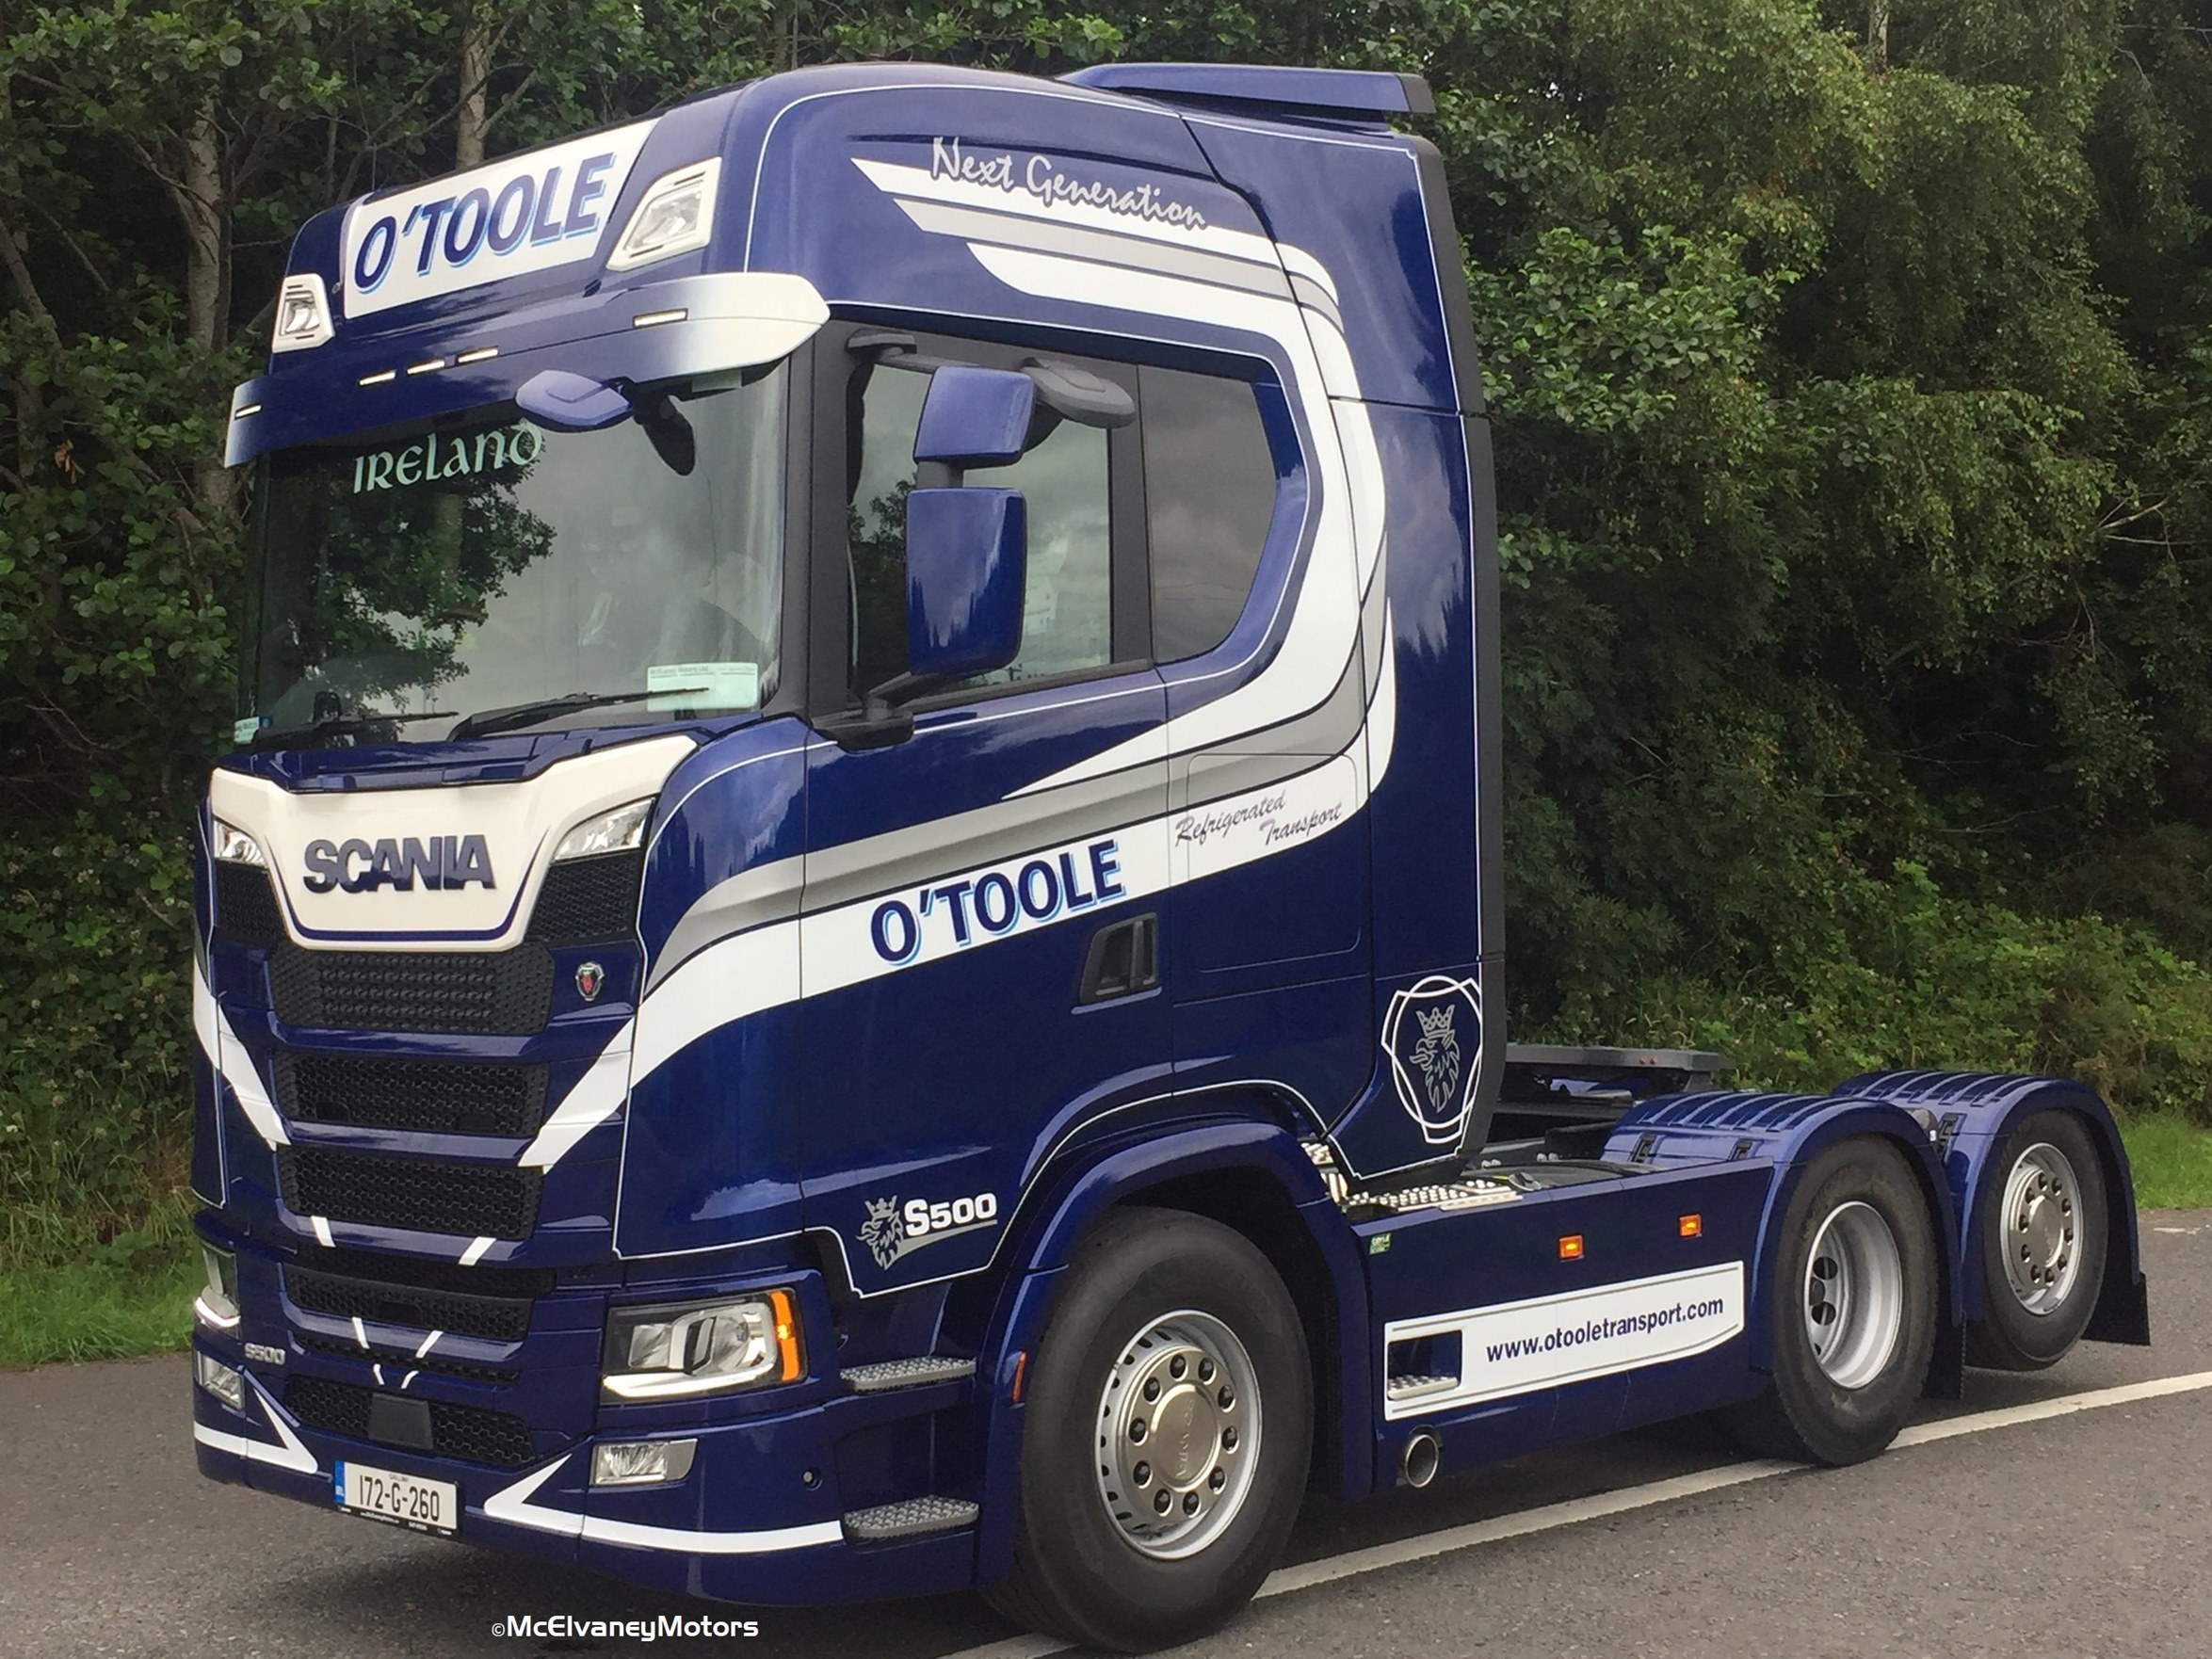 Another New Generation Scania for O'Toole Transport